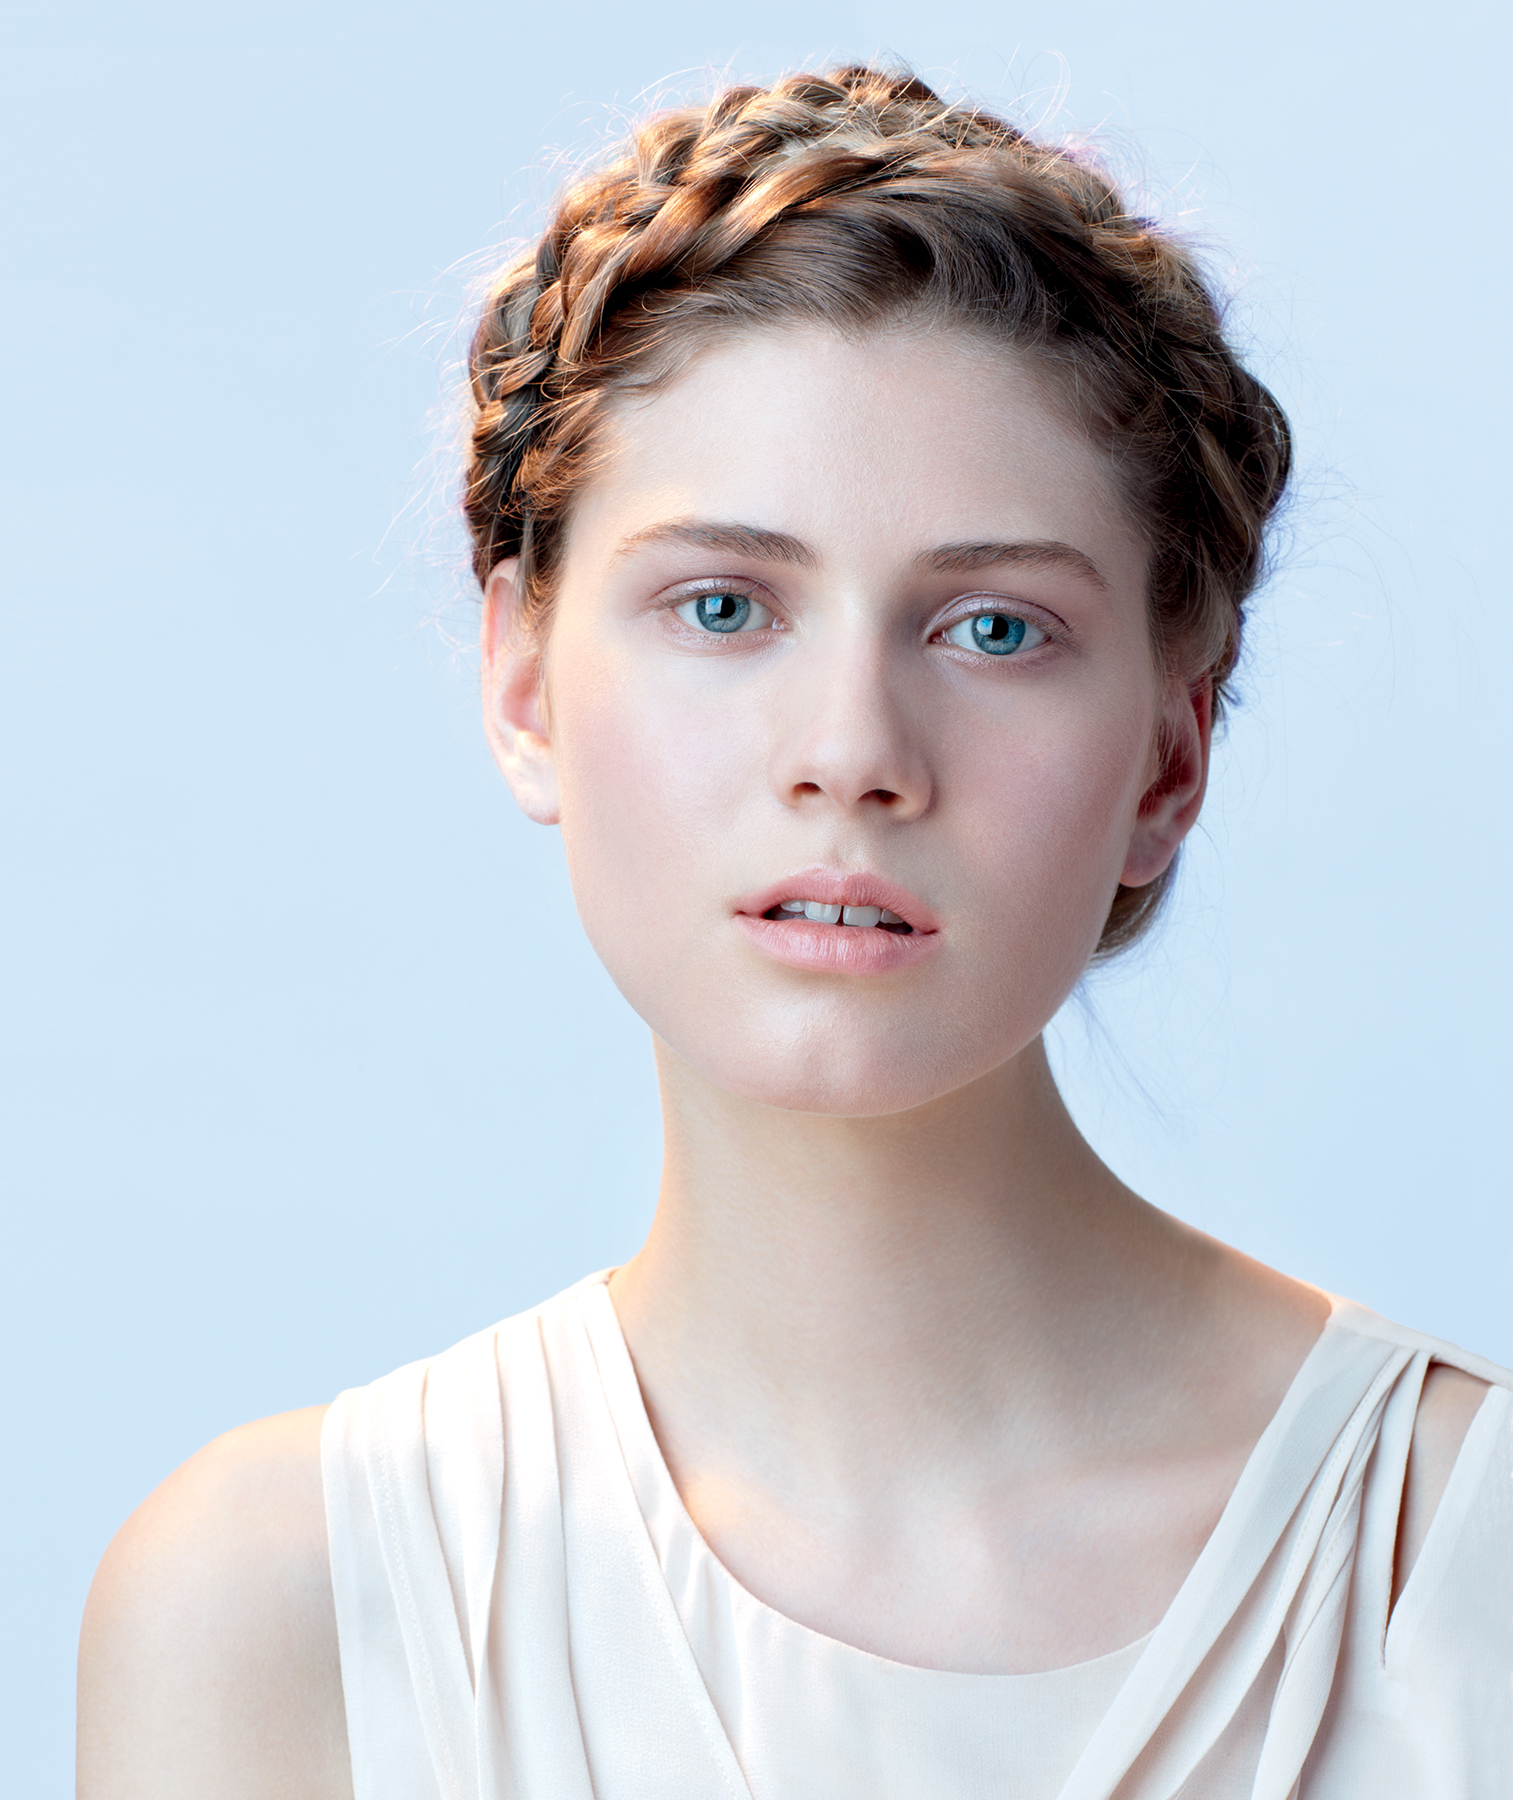 Model wearing a braided crown hairstyle